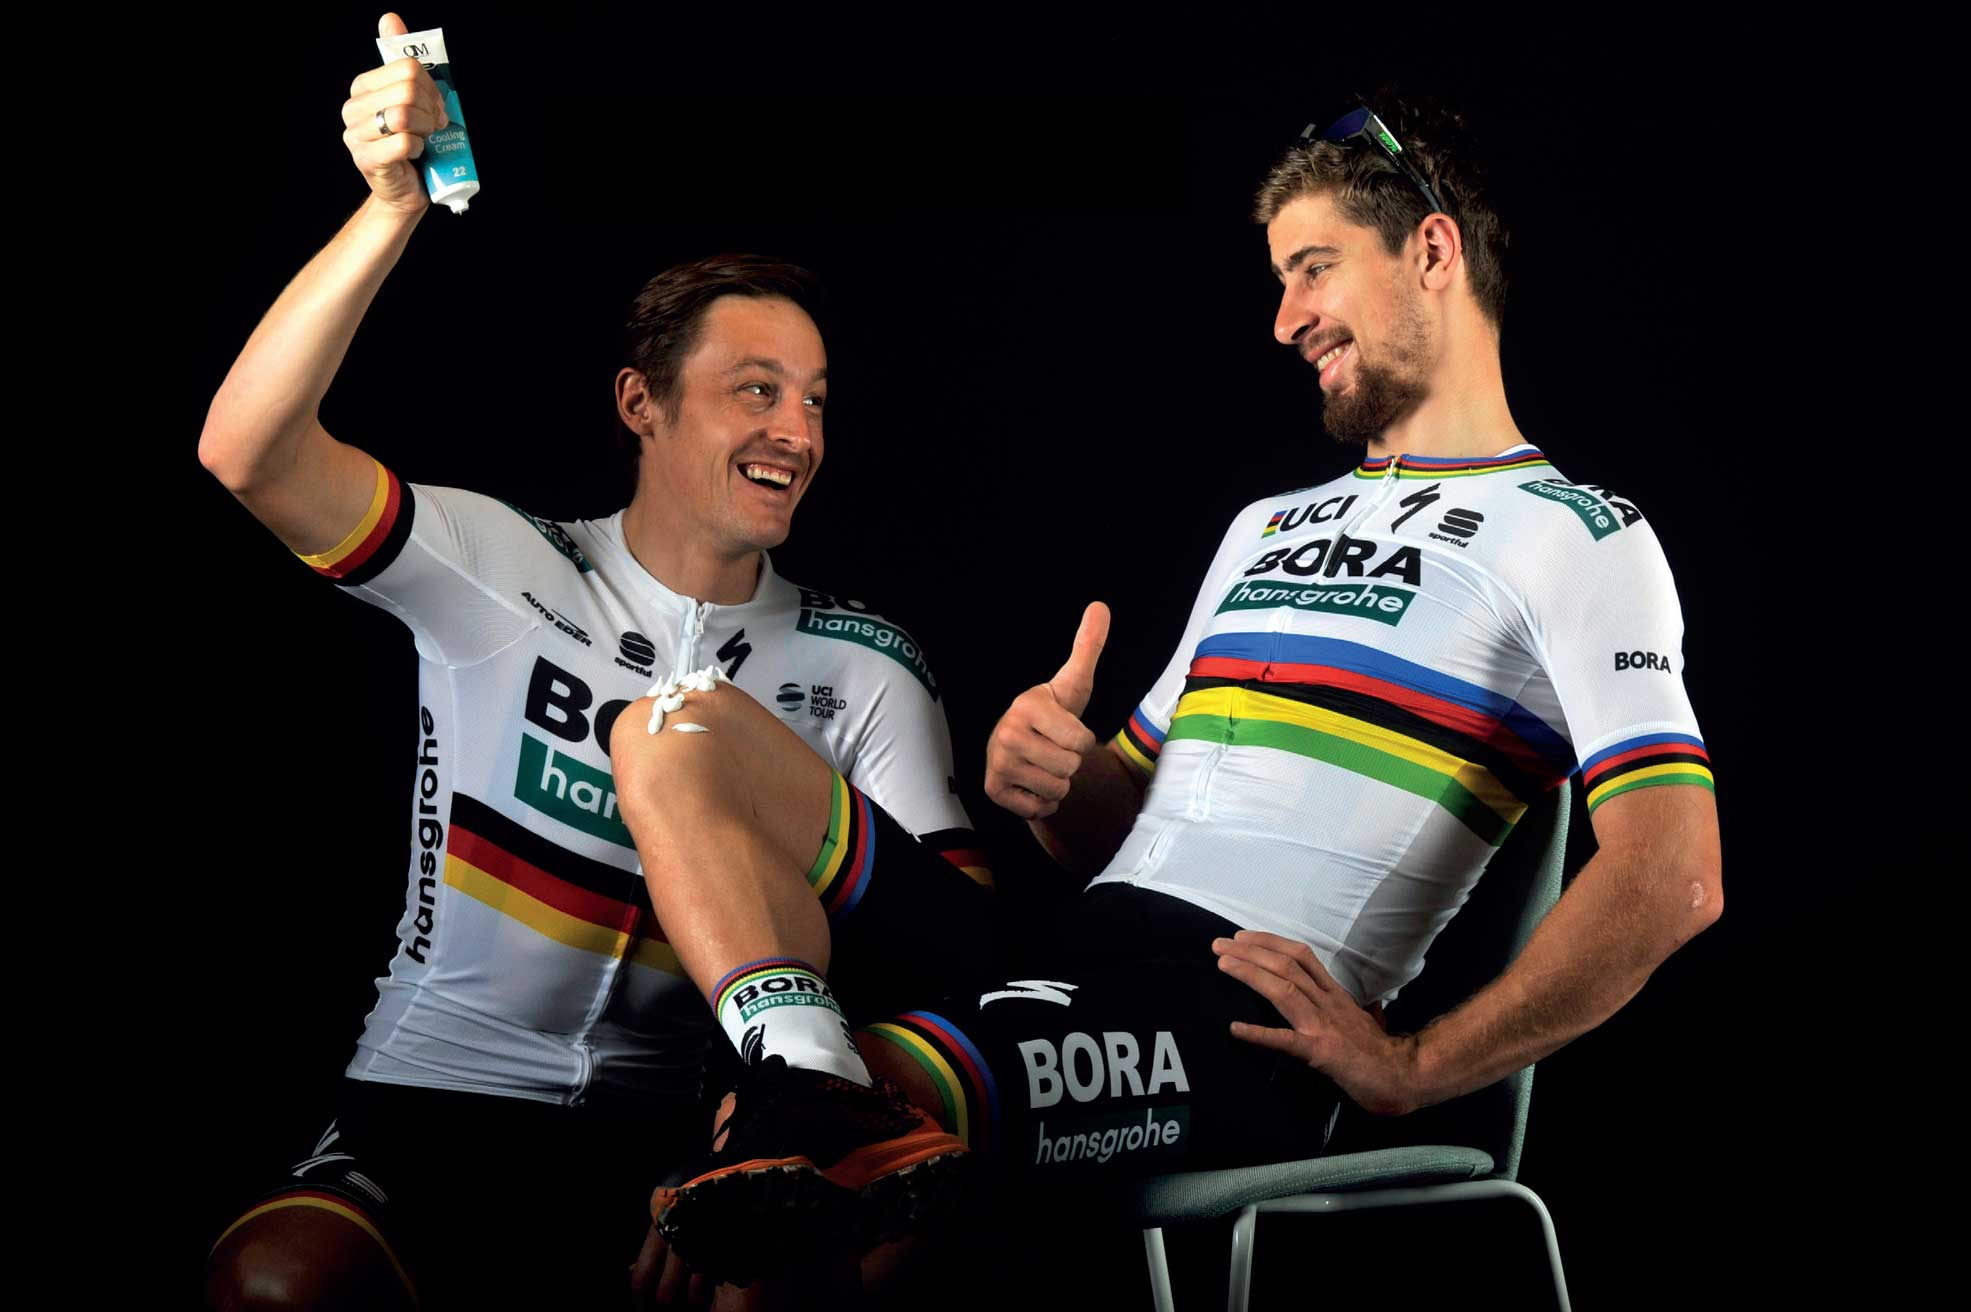 Bora hansgrohe German Professional Cycling